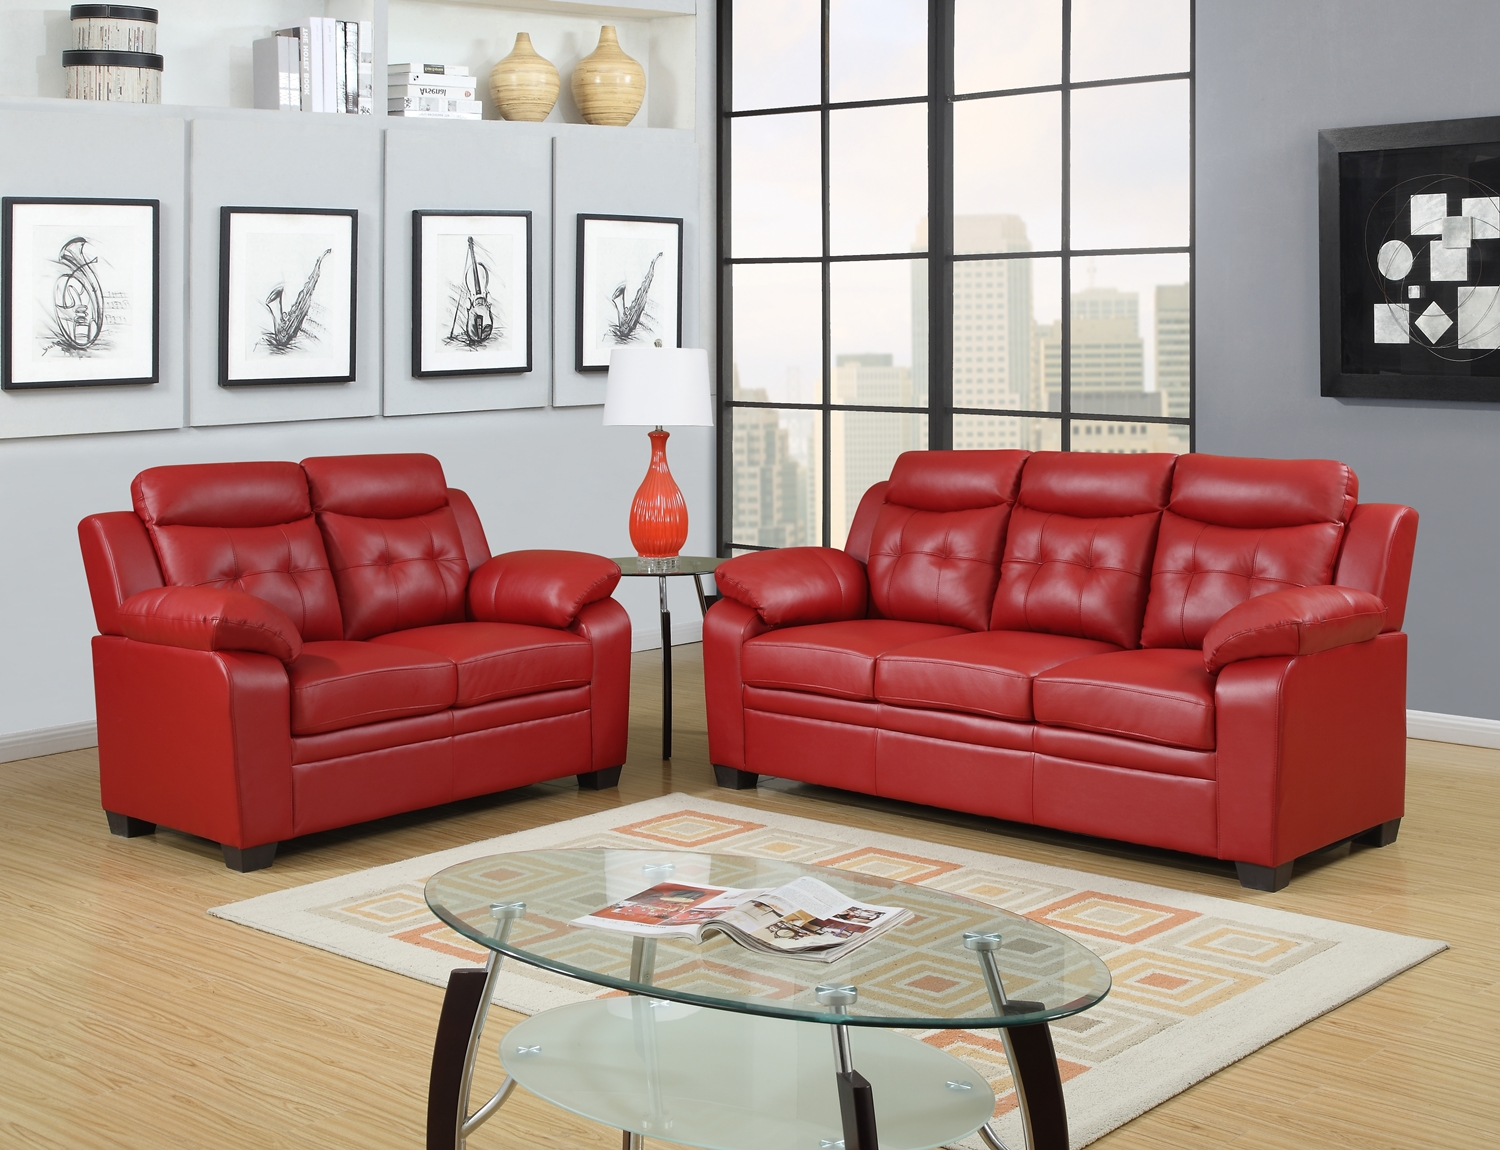 modern apartment sized furniture | Red Apartment Size Casual Contemporary Bonded Leather Sofa Set